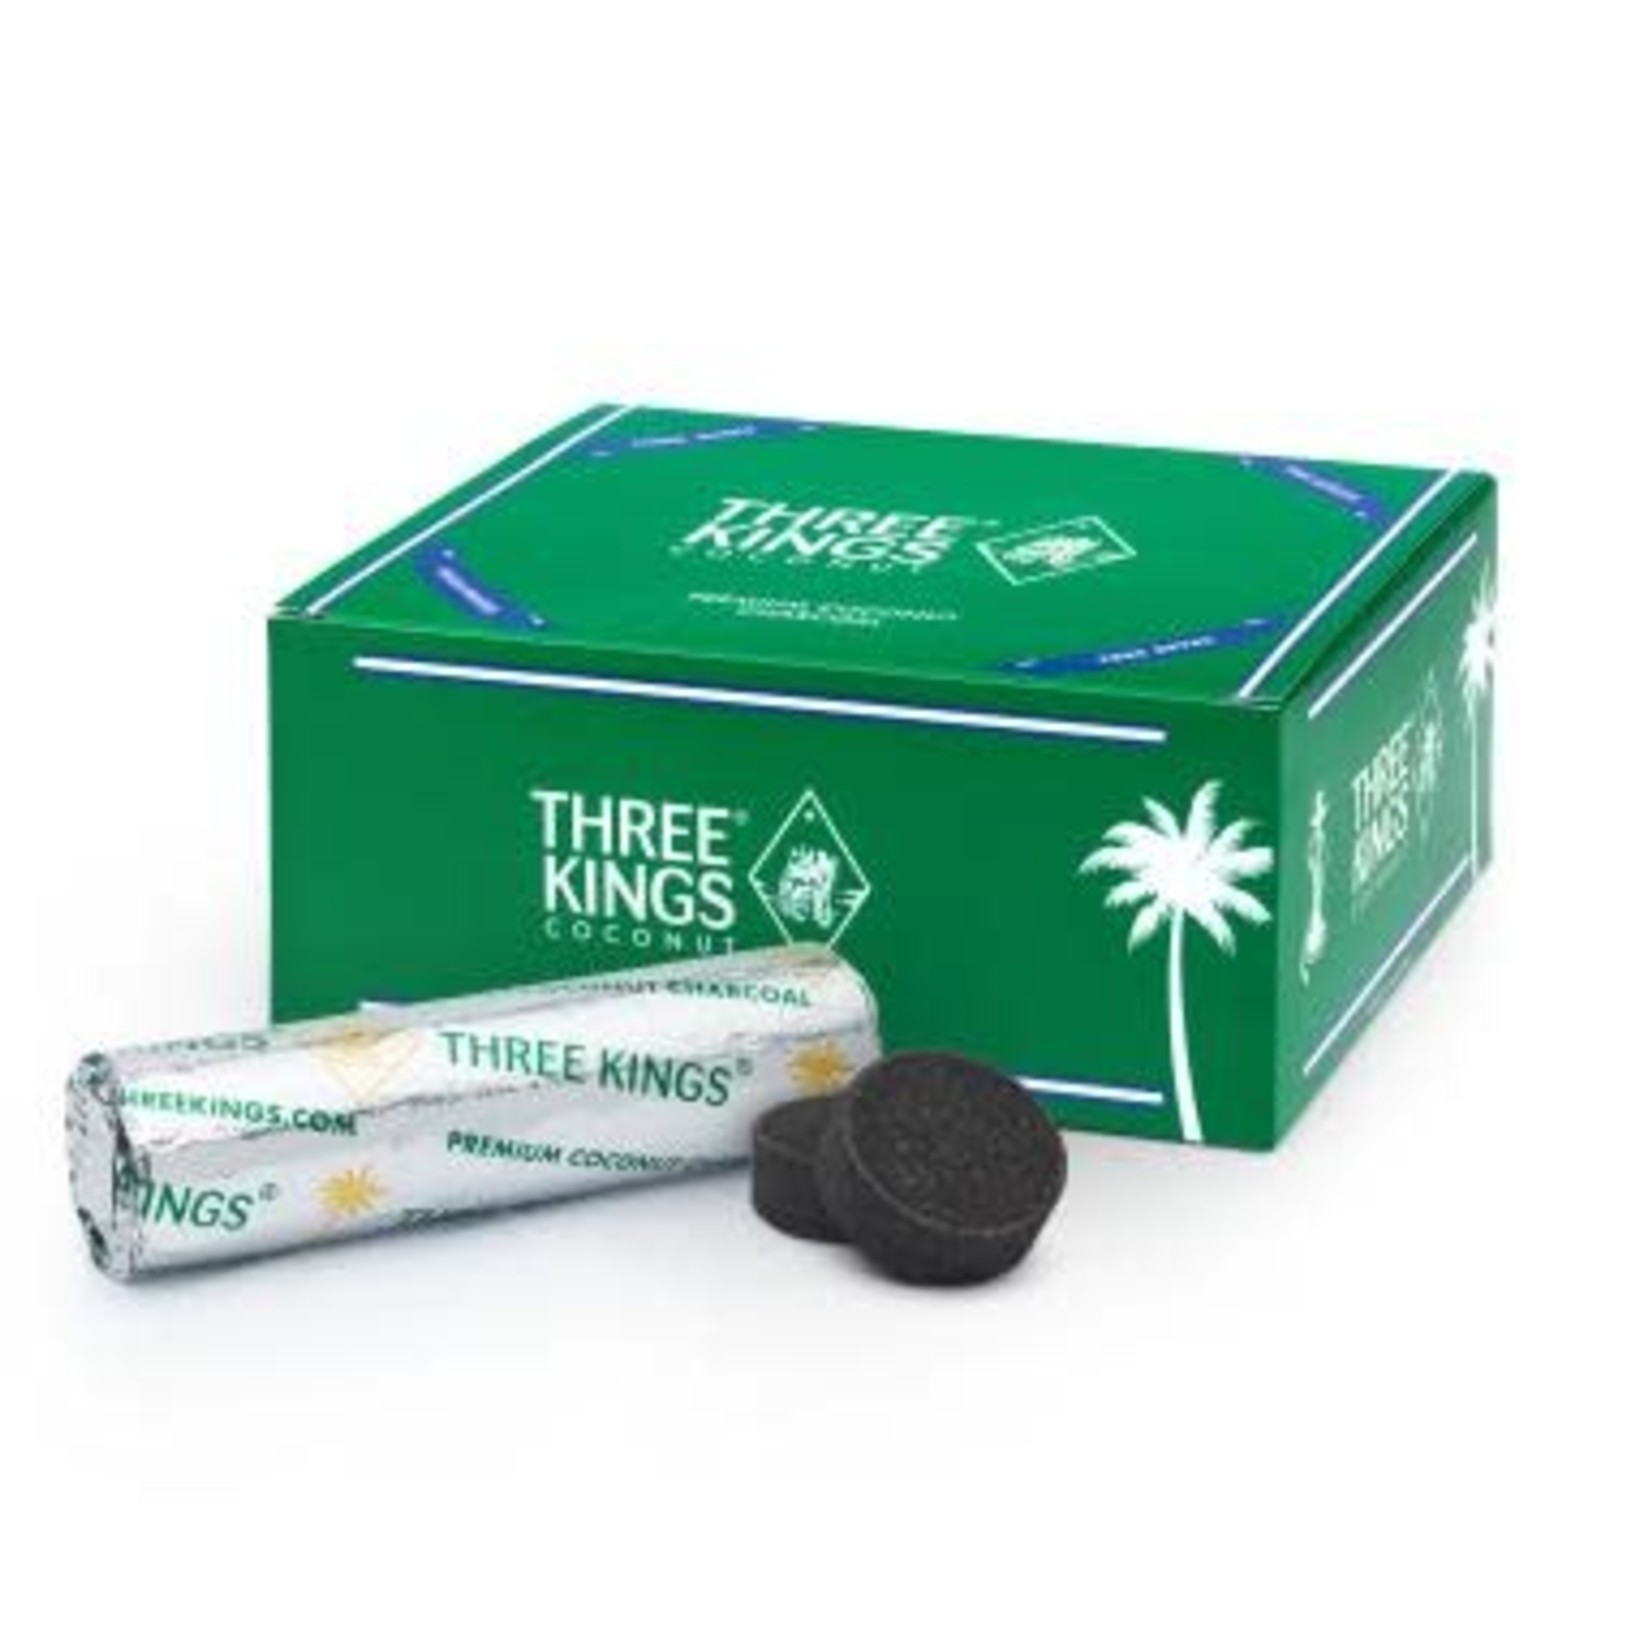 Three Kings 33mm Coconut Charcoal Tablets Needs Electric burner